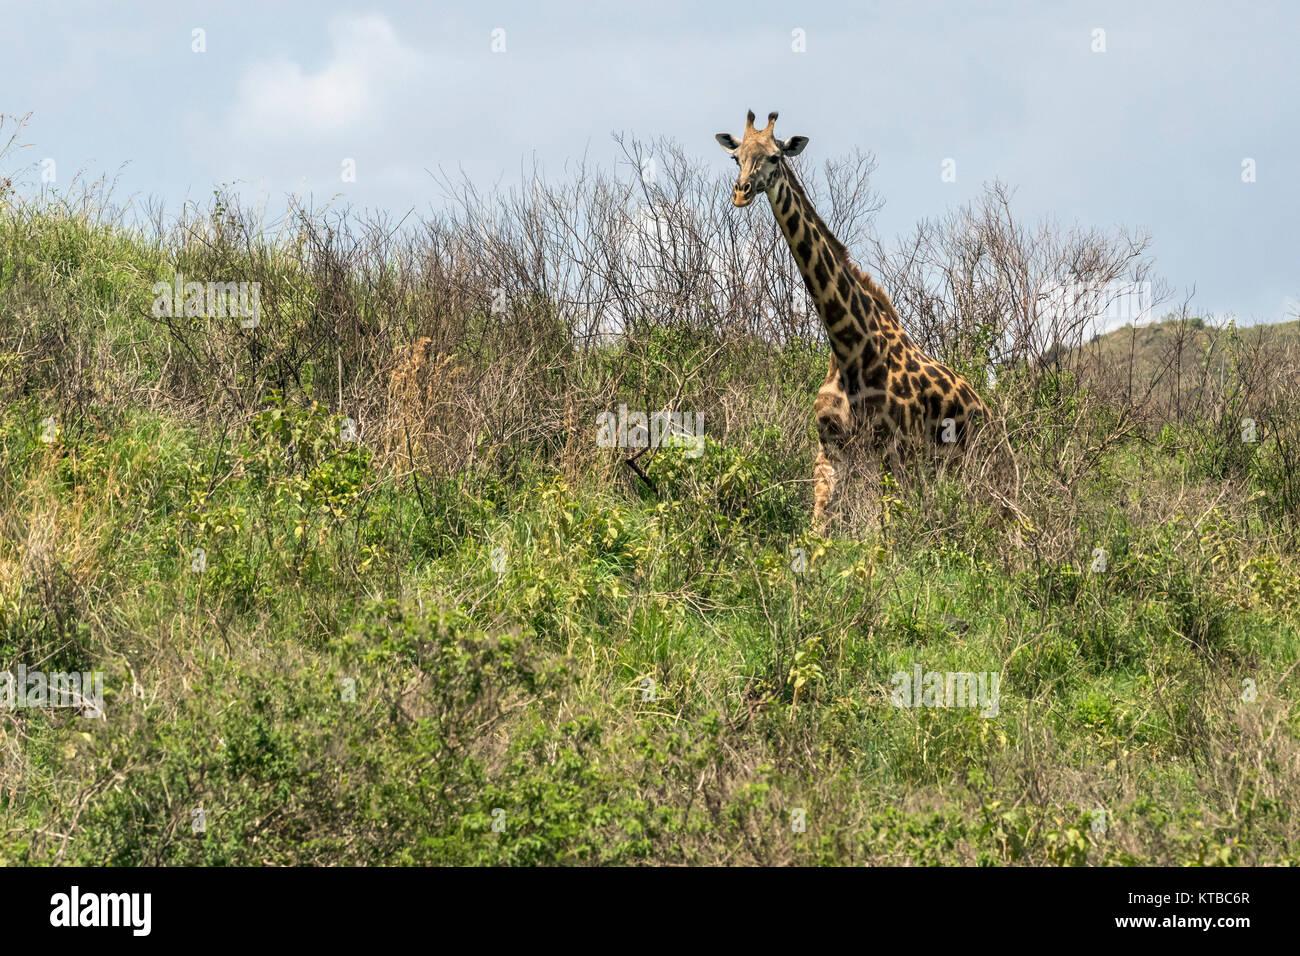 Masai giraffe (Giraffa tippelskirchi) strolling through the bush, Arusha NP, Tanzania - Stock Image